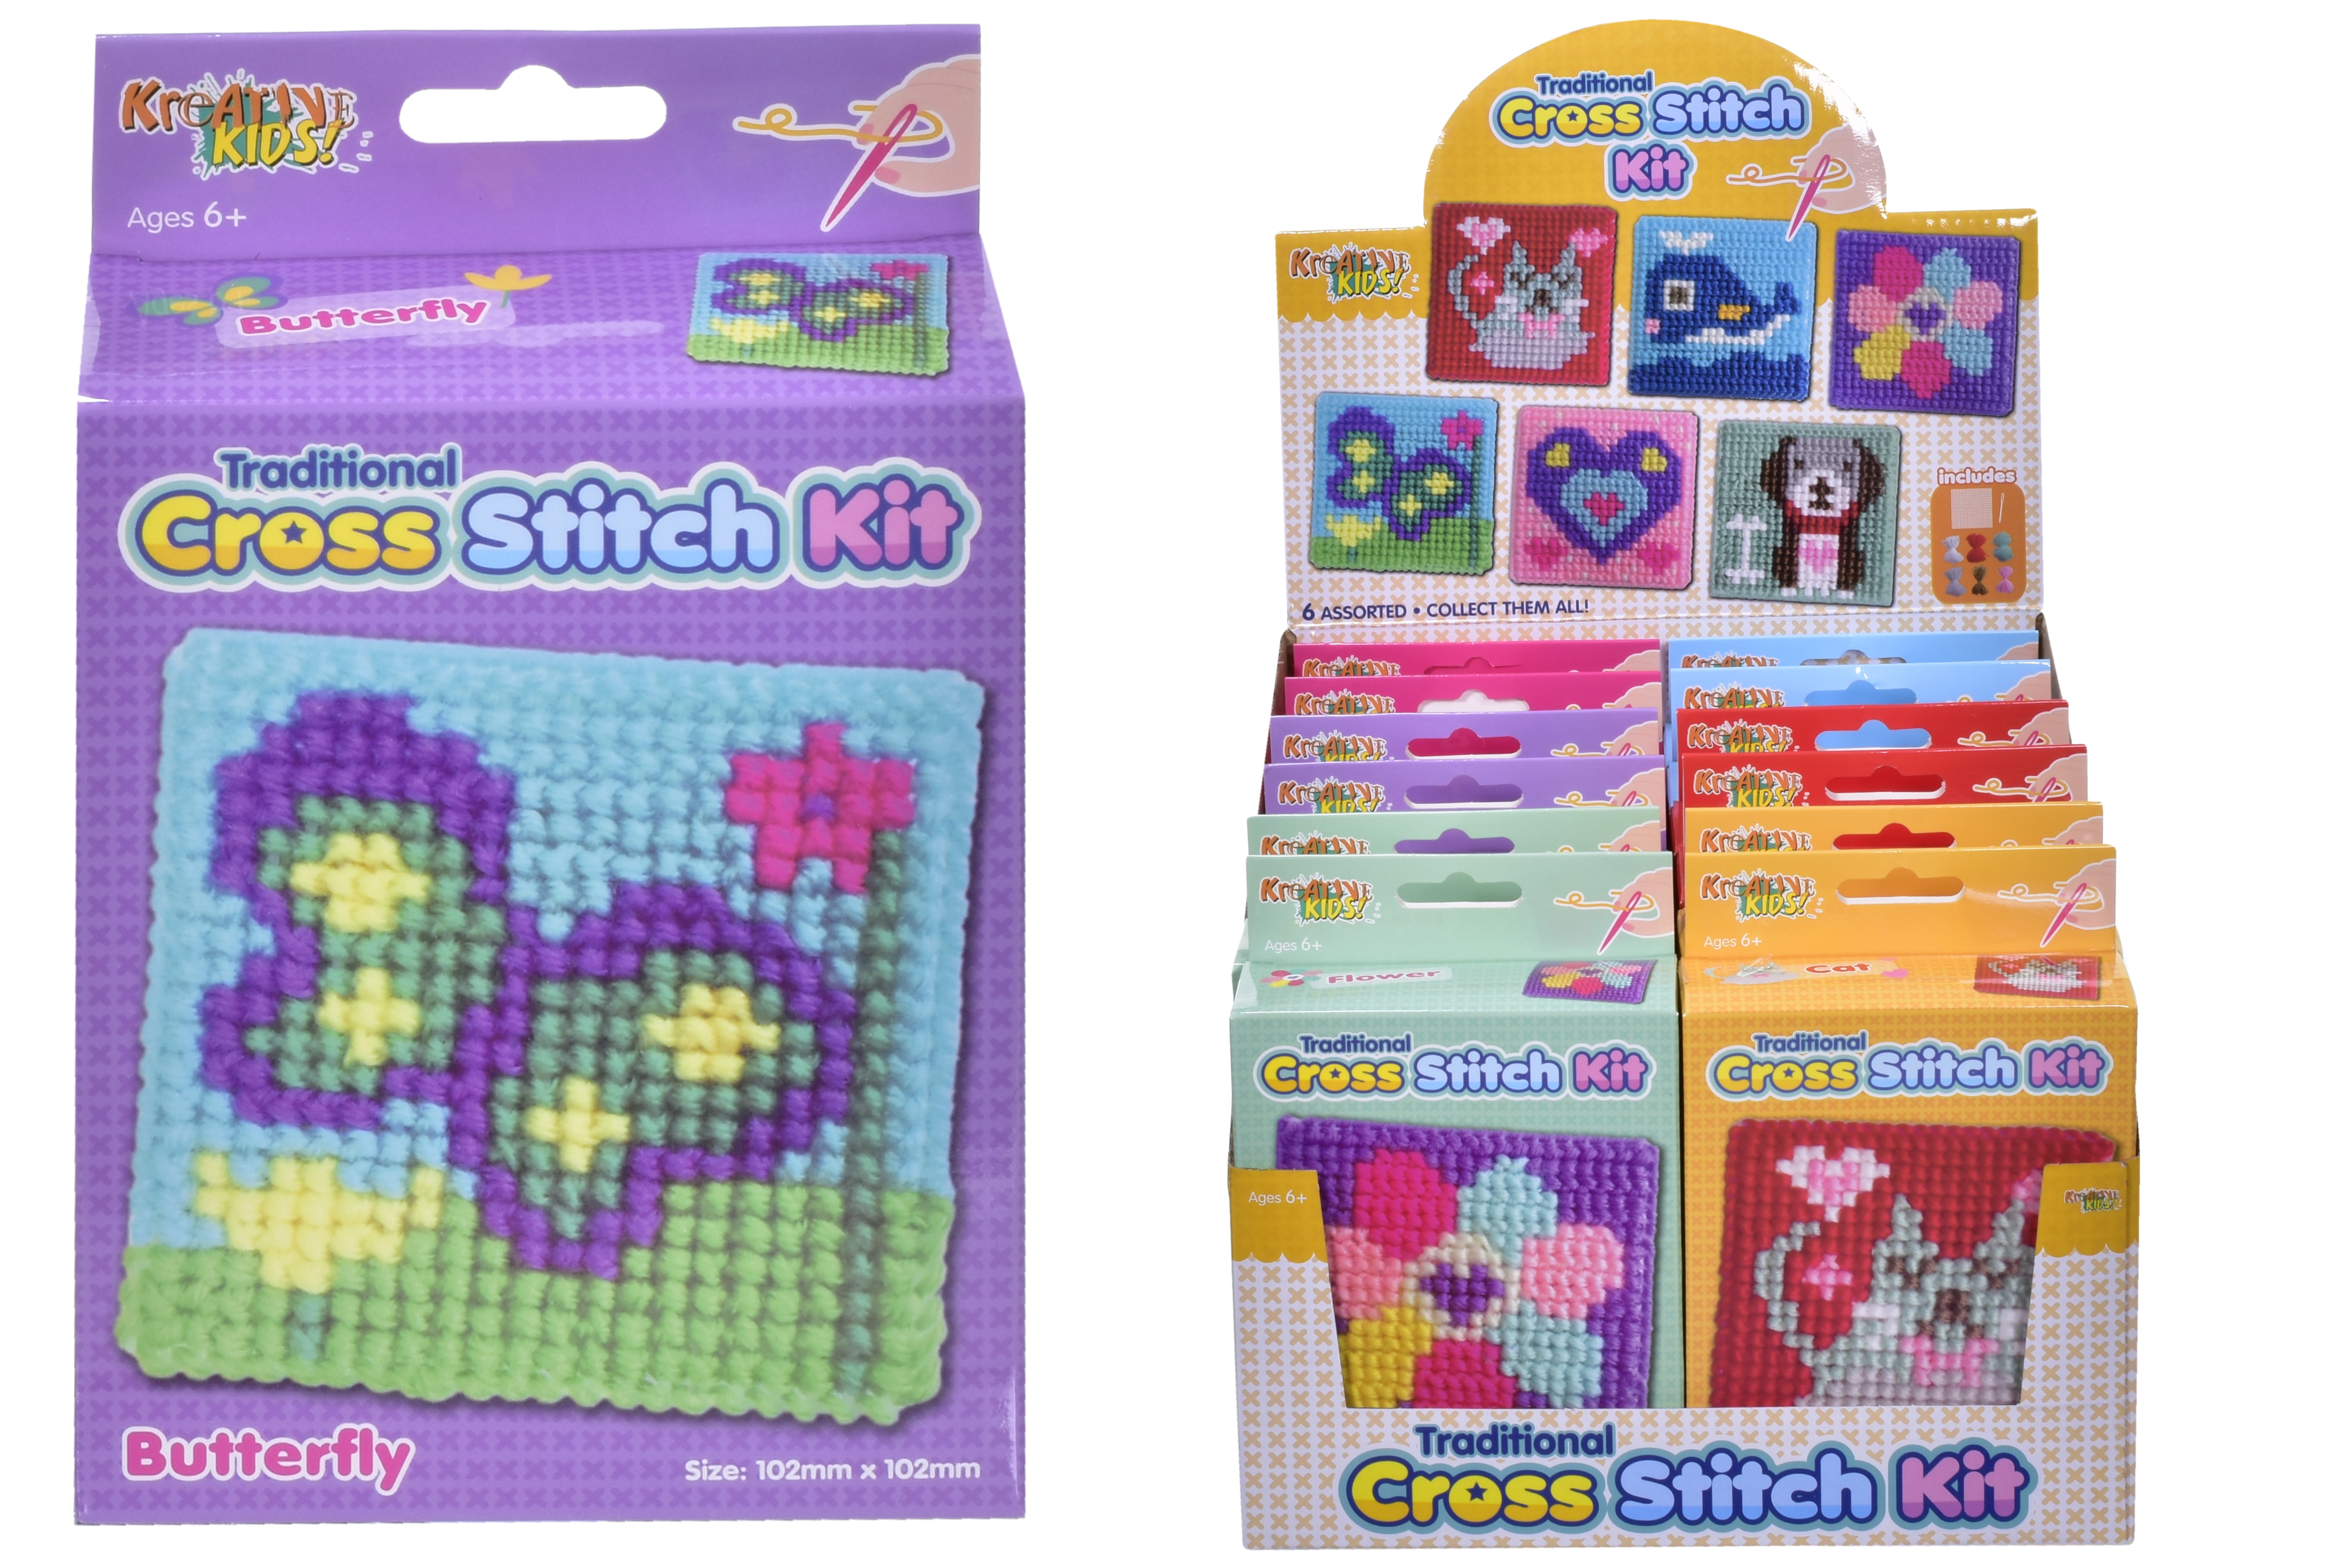 Cross Stitch Kit (6 Assorted) In Colour Box/Display Box